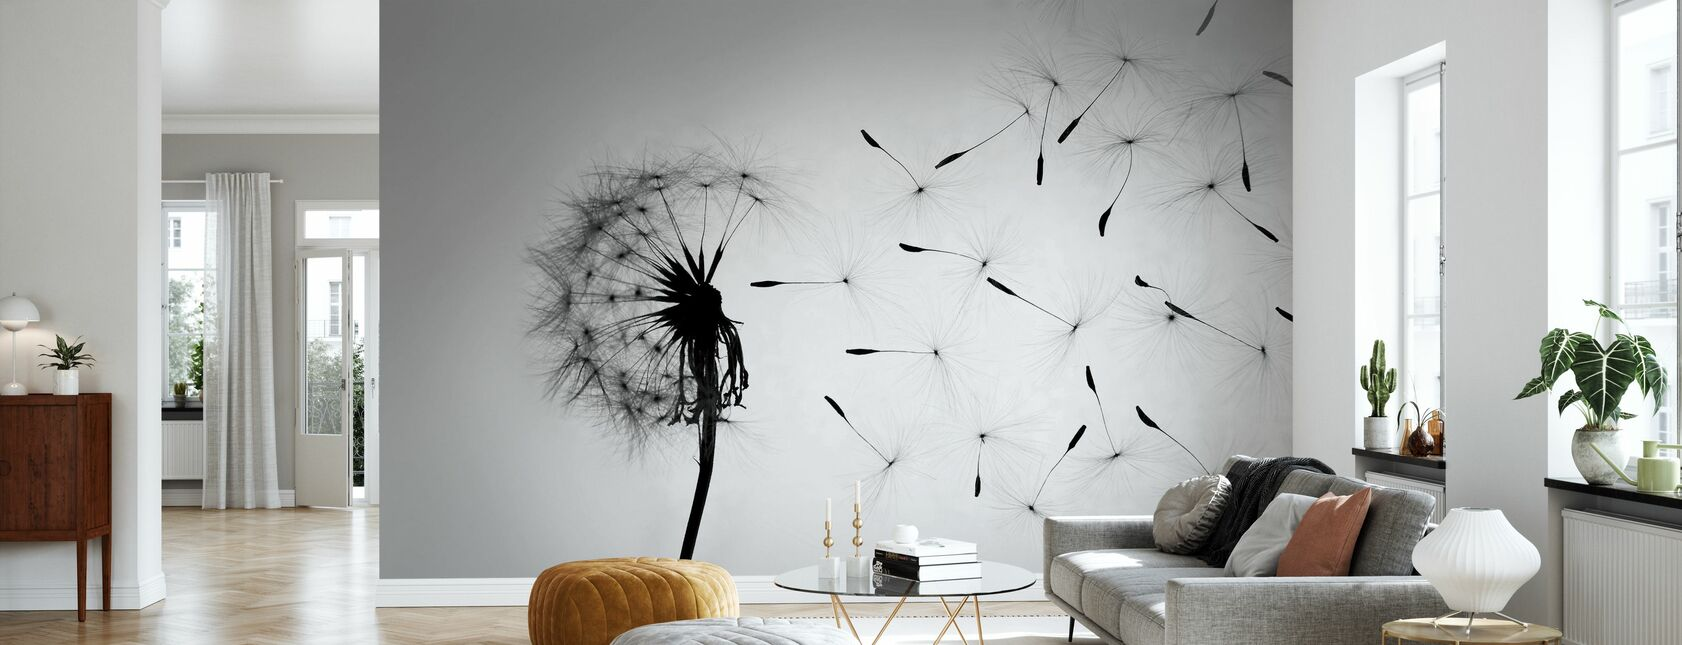 Dandelion - Black White - Wallpaper - Living Room